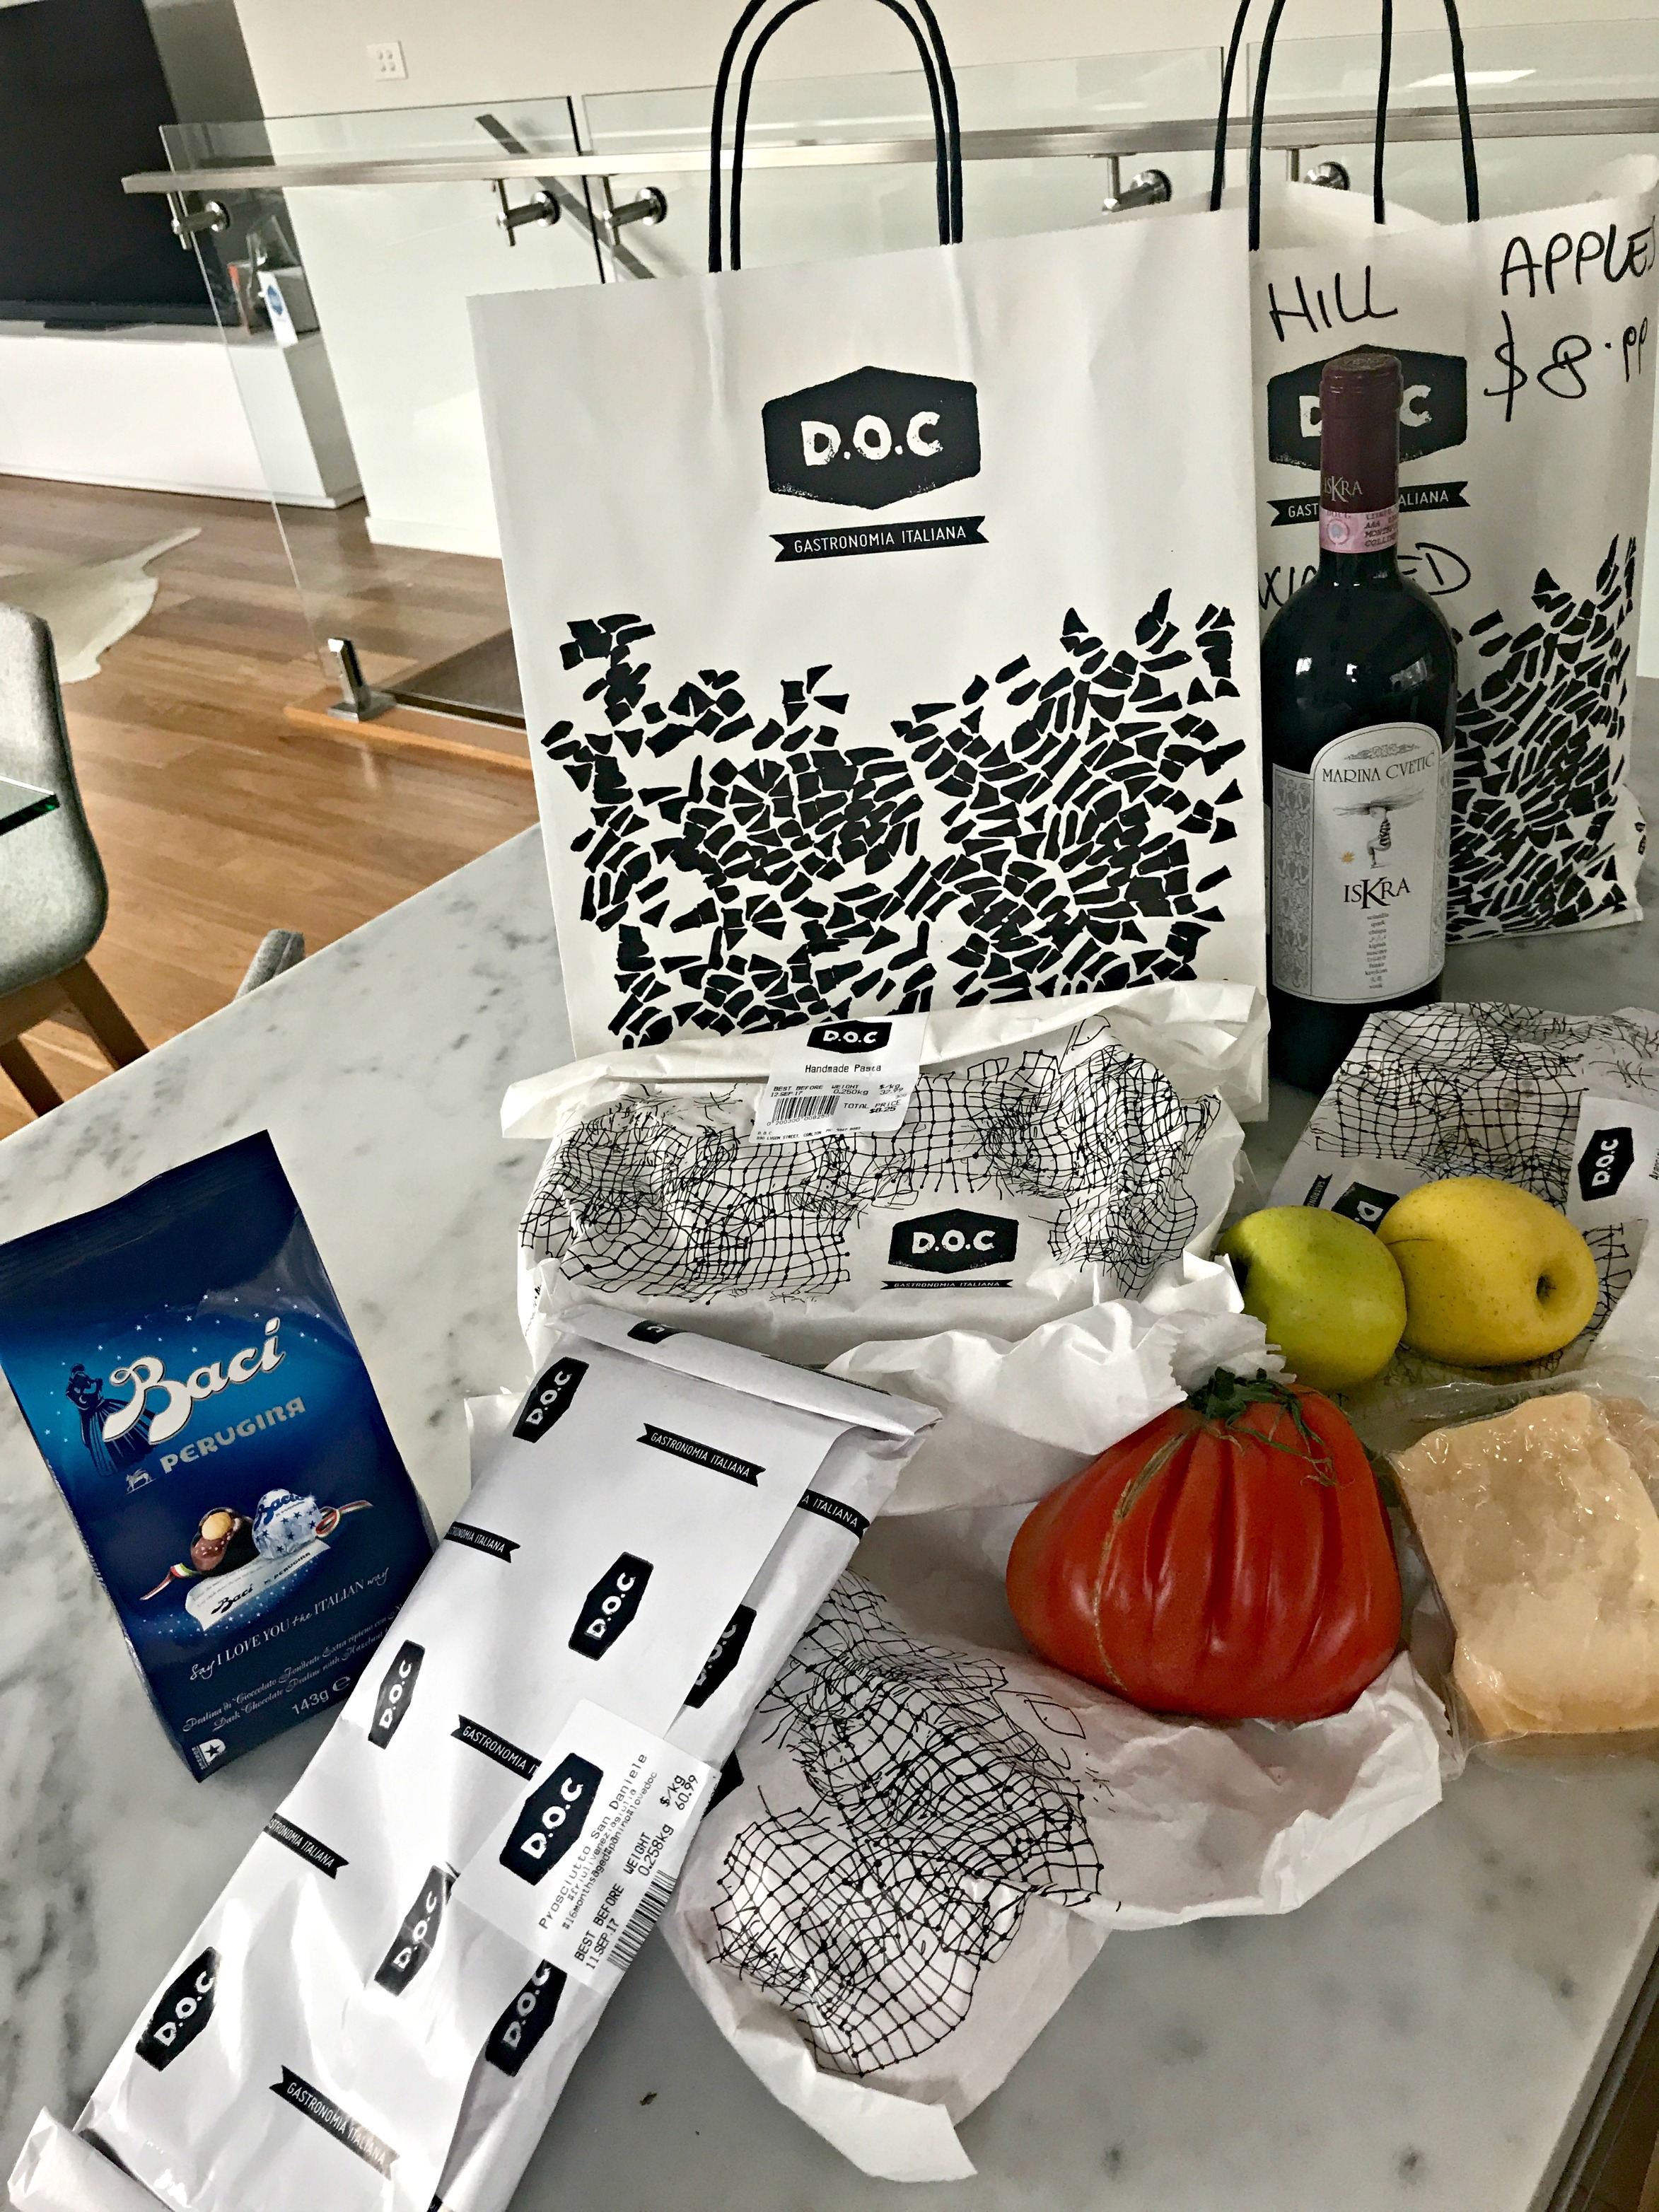 My purchases from D.O.C. Delicatessen. Organic apples and tomatoes, buffalo cheese, parmesan cheese, San Daniella prosciutto meat, home made spaghetti, Italian wine and my favourite Baci chocolates, (with little love notes).